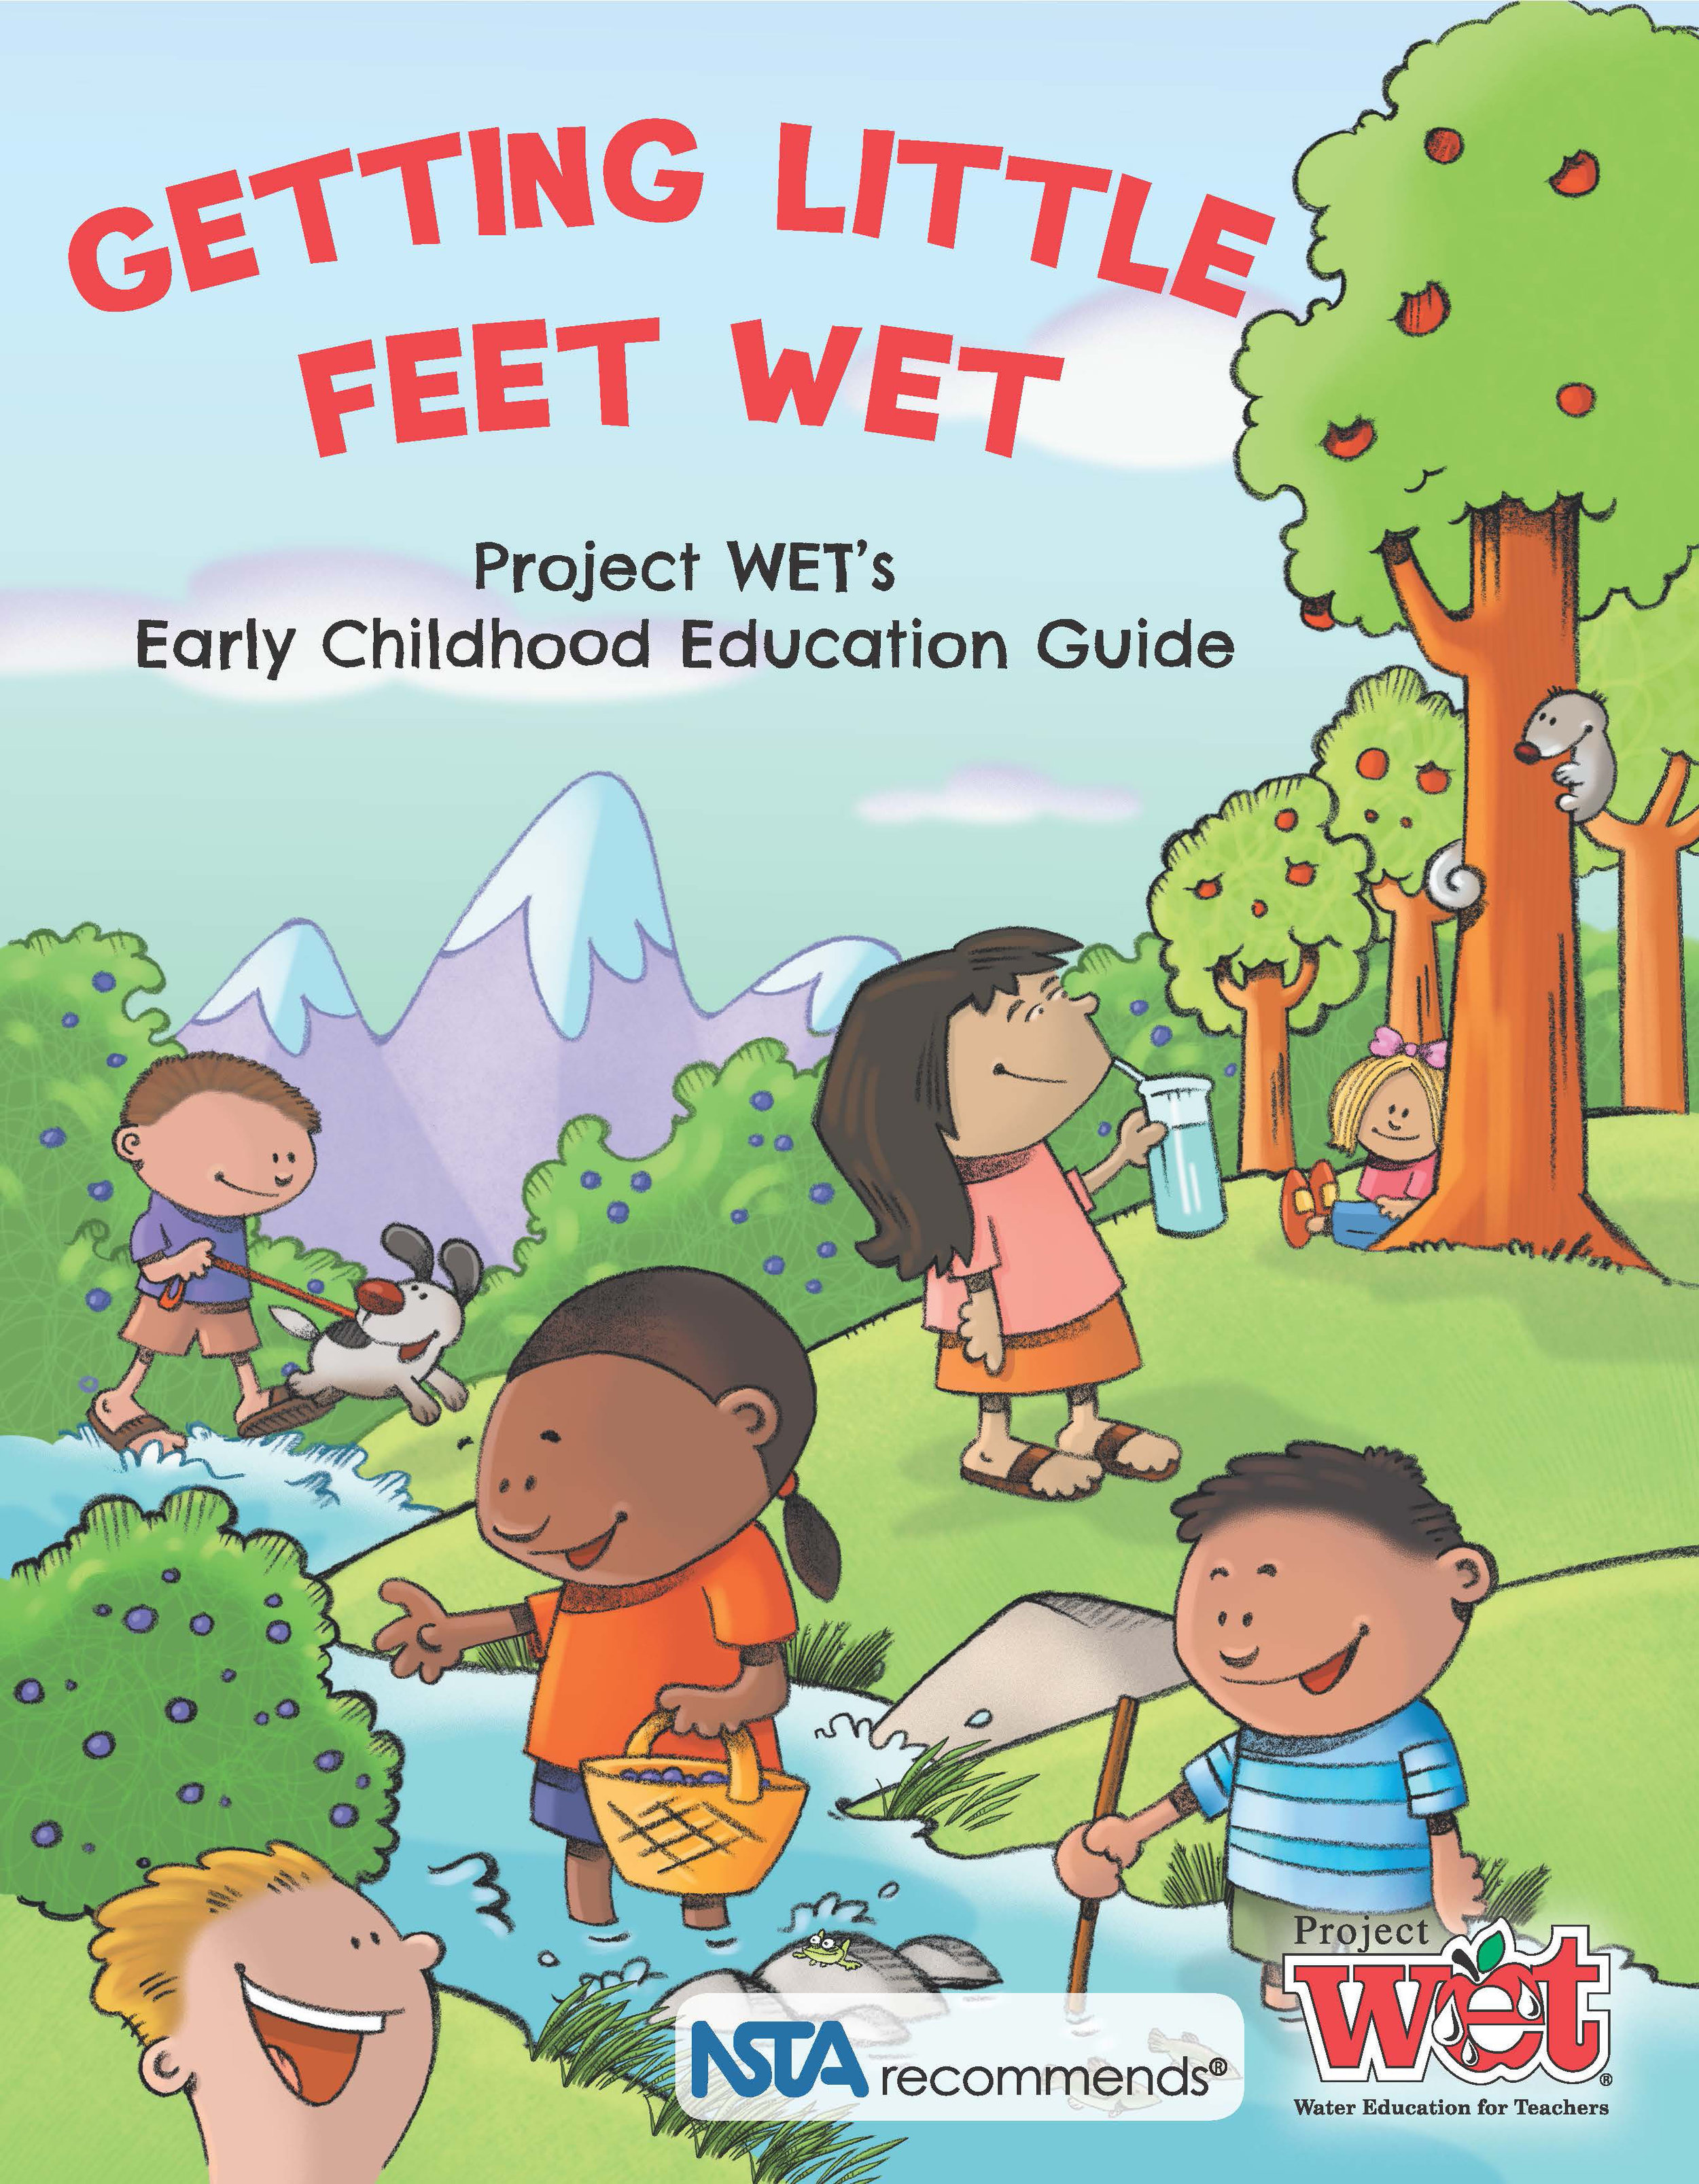 Getting Little Feet Wet - Grades: Pre-K through 2ndGetting Little Feet Wet can be partnered with the full Project WET curriculum and activity guide or used as a stand-alone resource. Every activity is hands-on and geared for younger audiences in grade levels Pre-K through 2nd. A 3 hour CPE investment is required to receive this Project WET resource. Contact Stephanie Keith for more details.(Image Credit: Project WET Foundation)See what NSTA has to say…